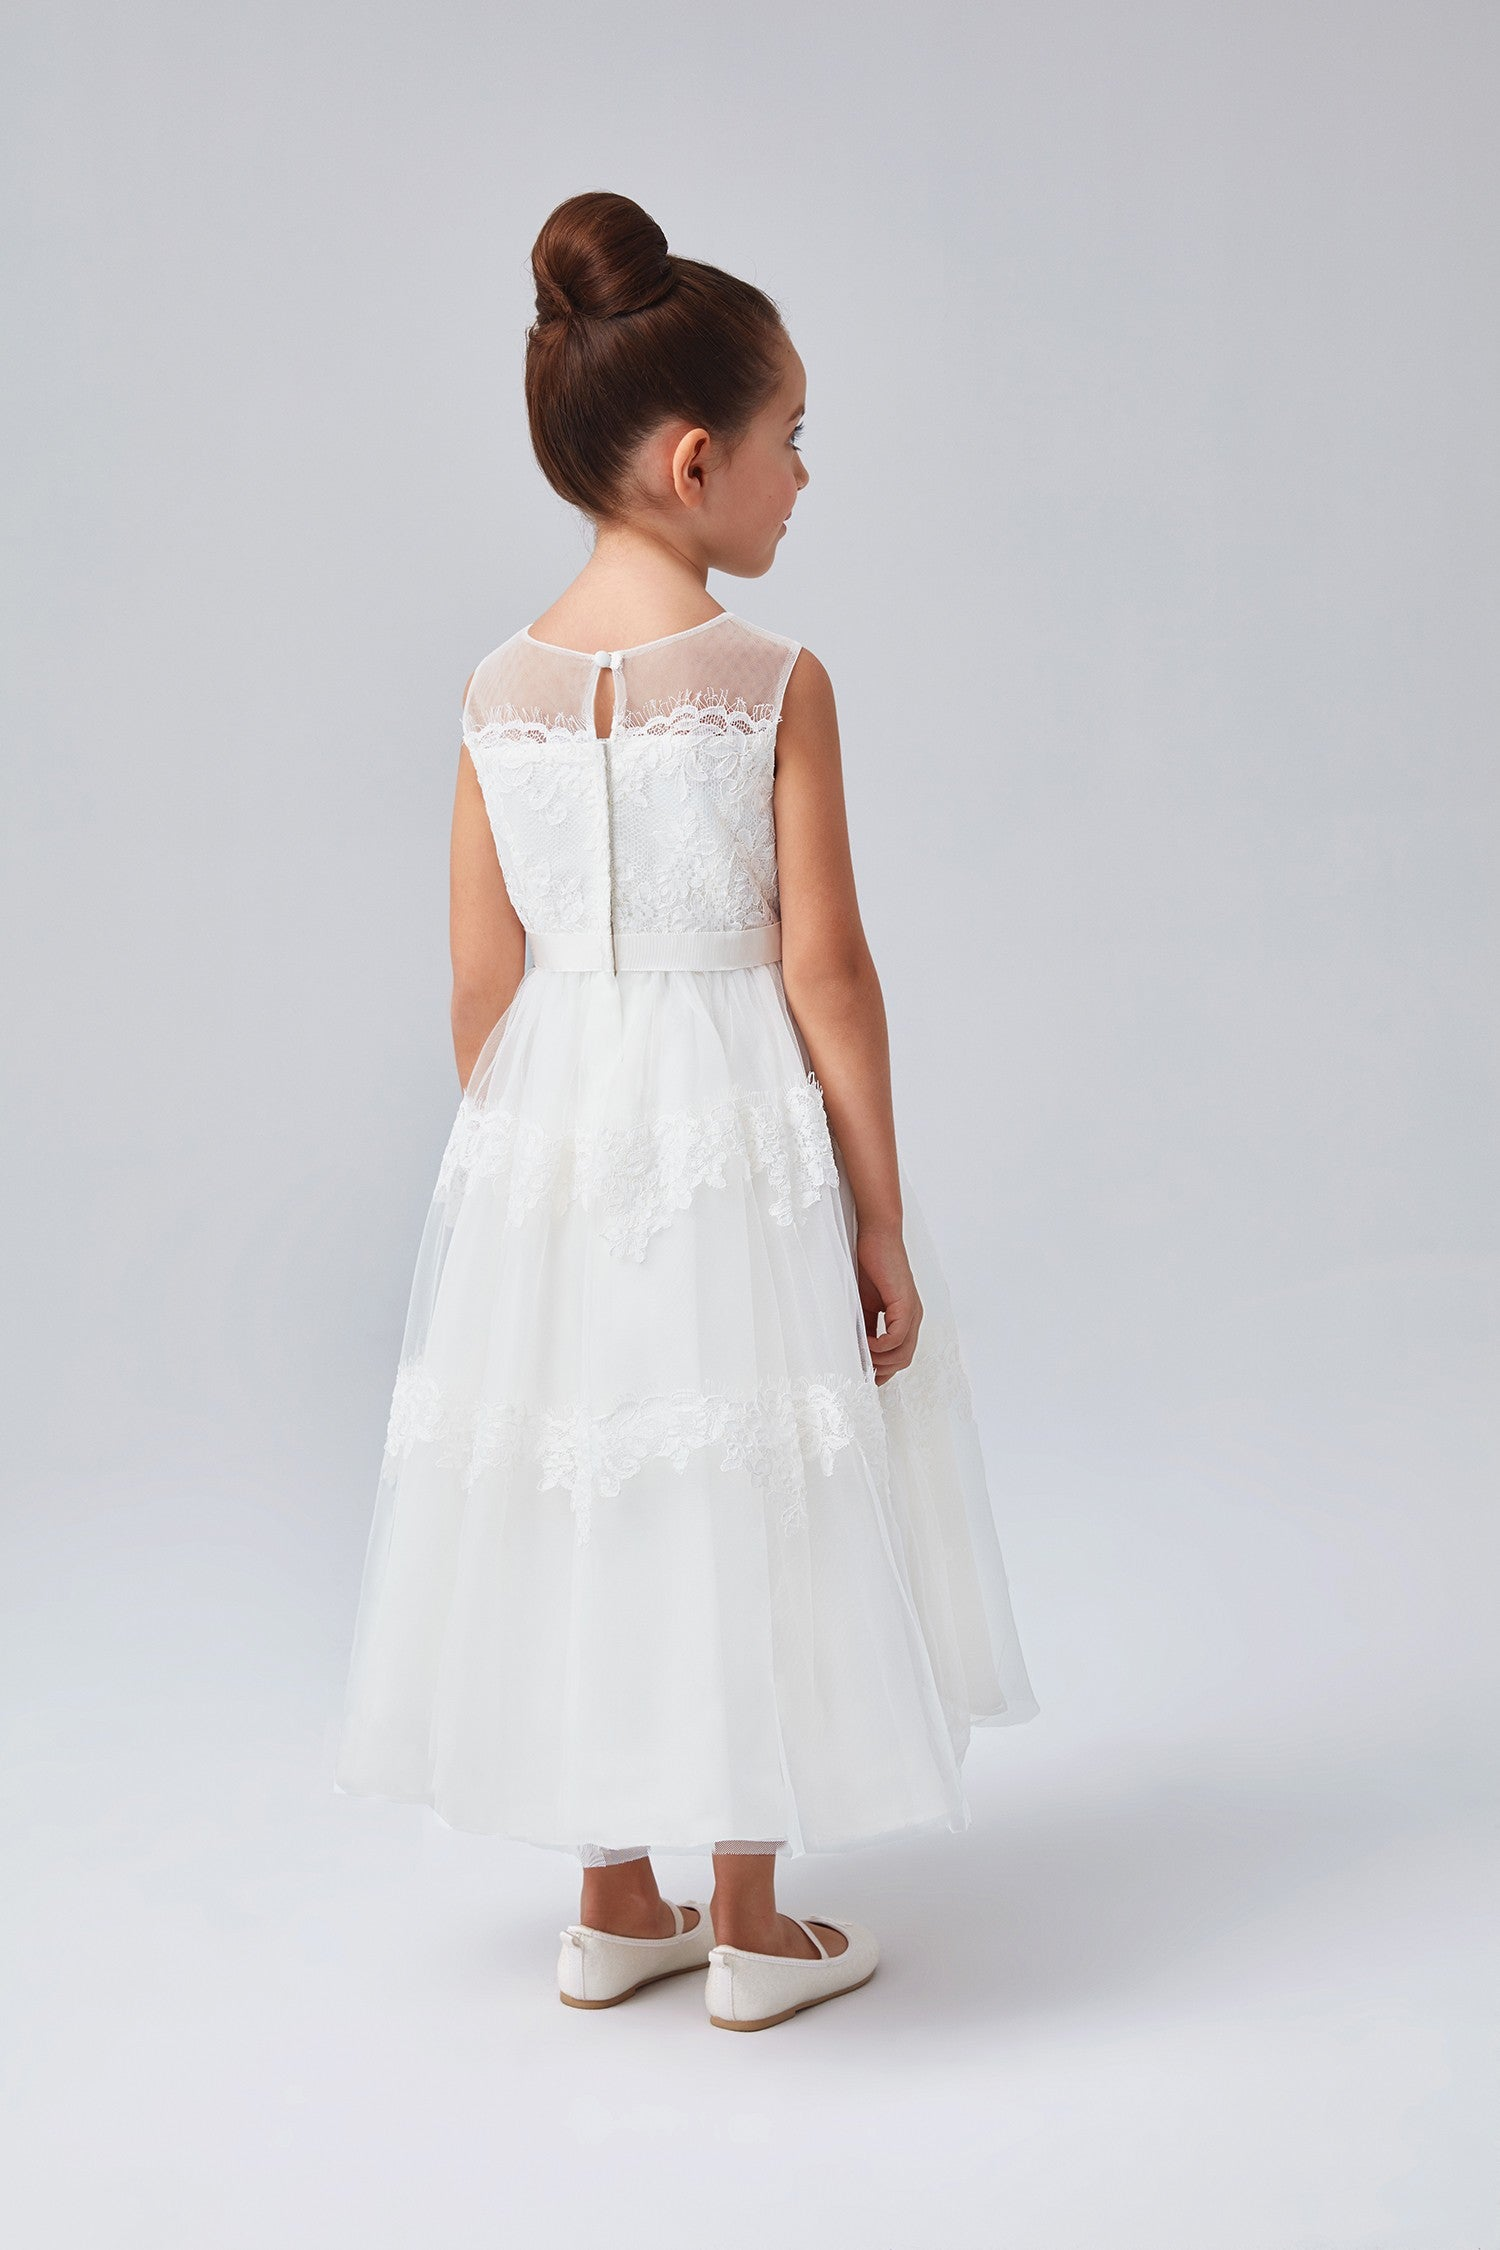 Banded Lace Illusion Flower Girl Dress-WG1374